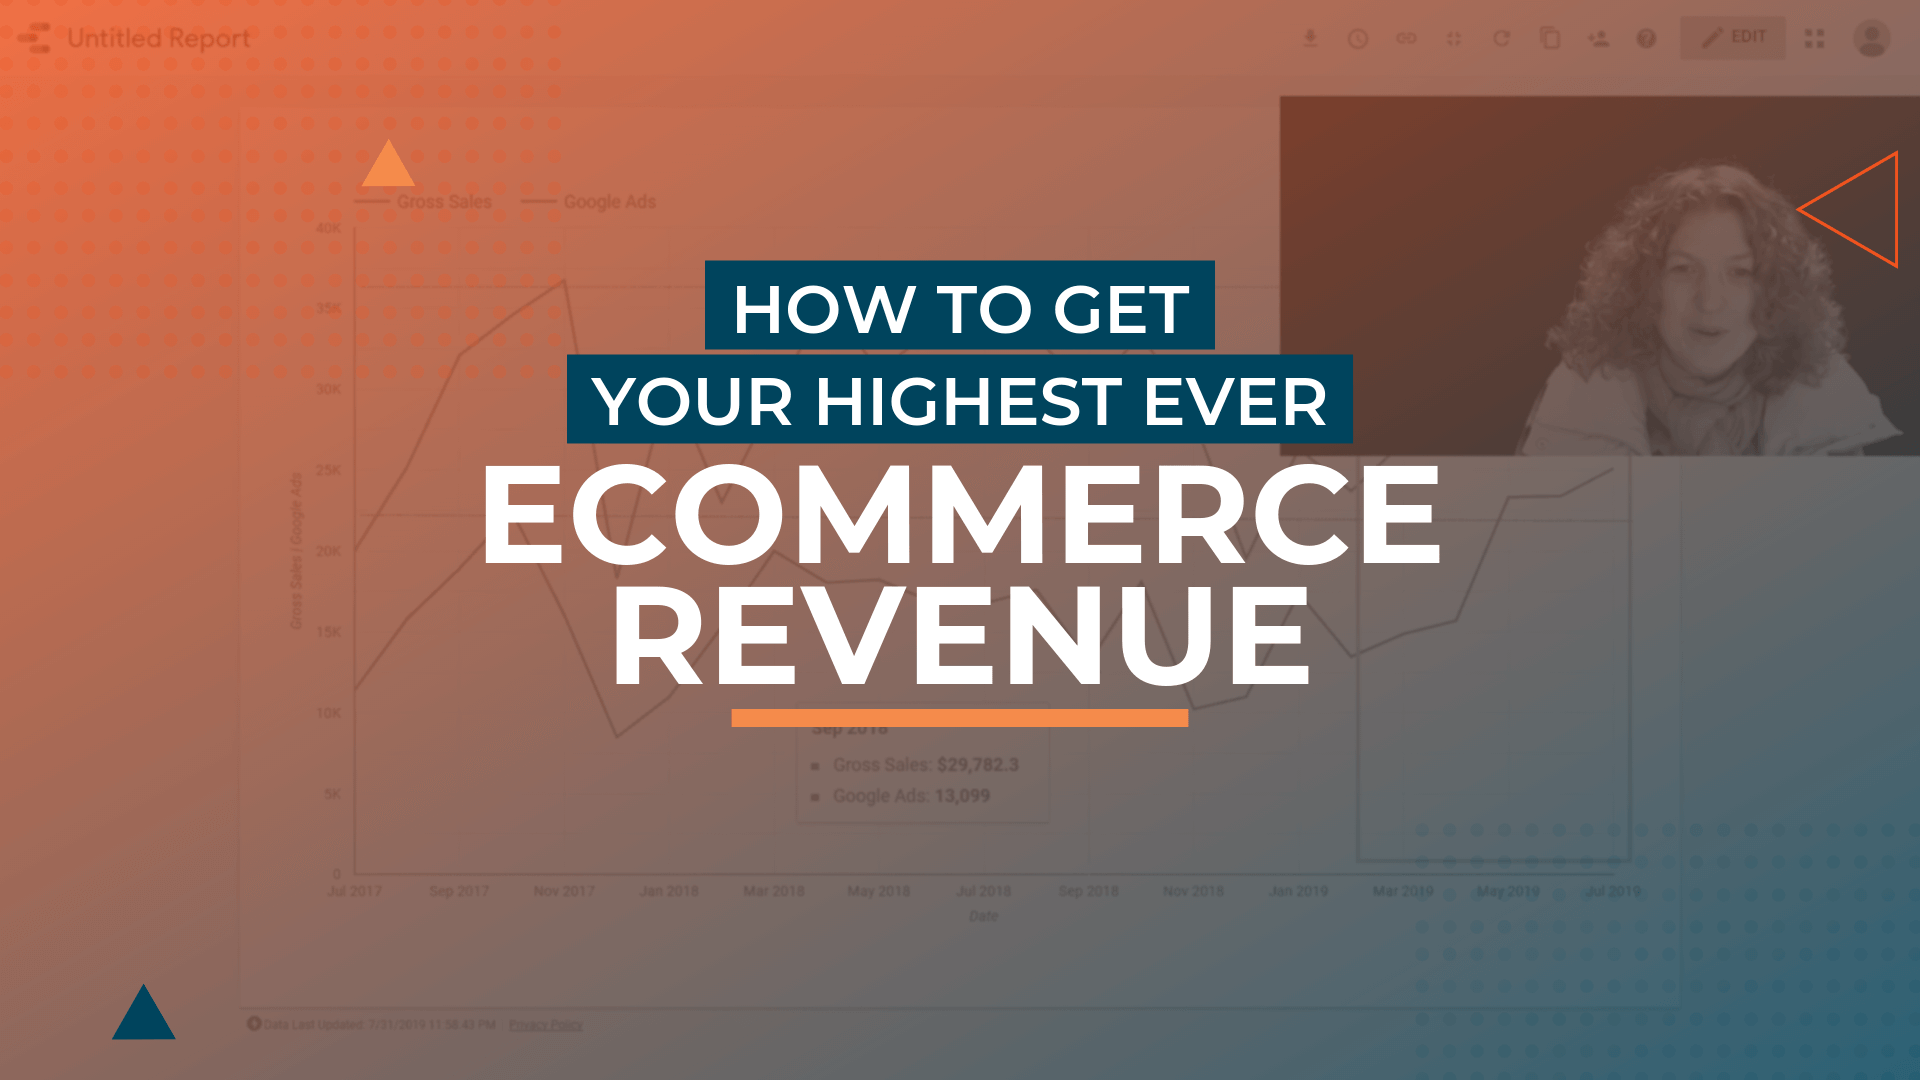 [Video] How to Get Your Highest Ever Ecommerce Revenue